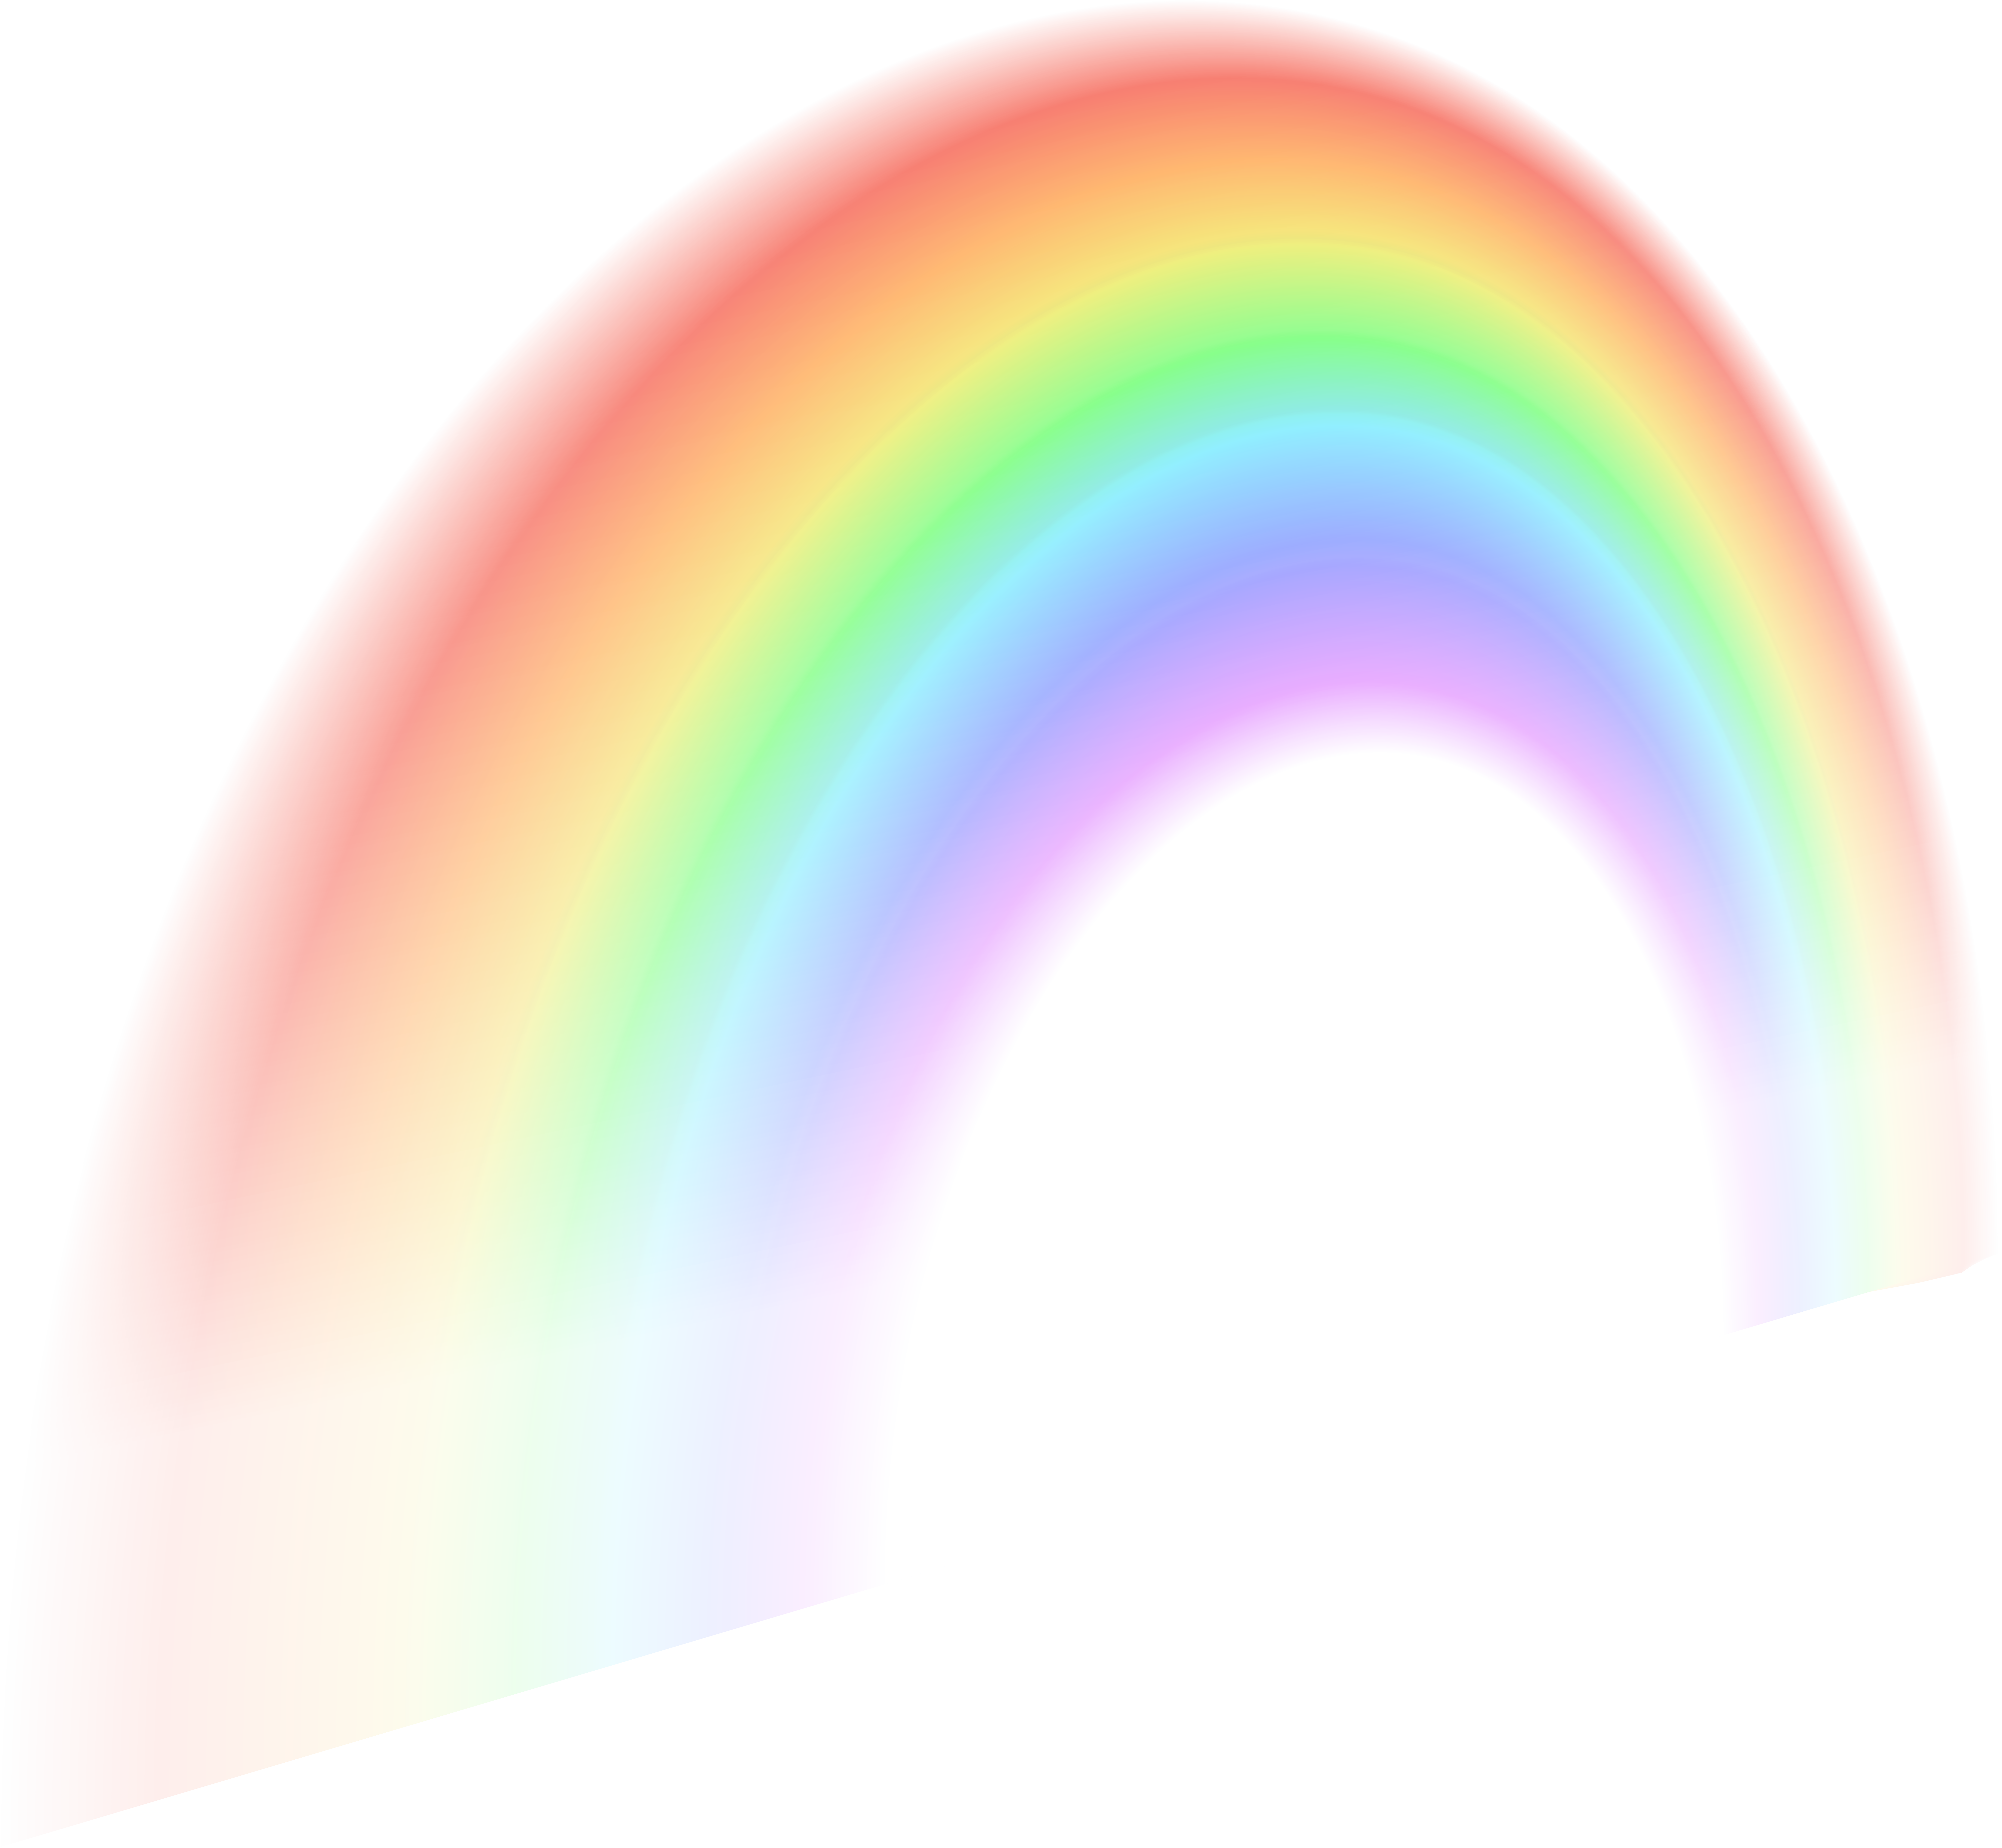 Rainbow banner png. Free clip art image